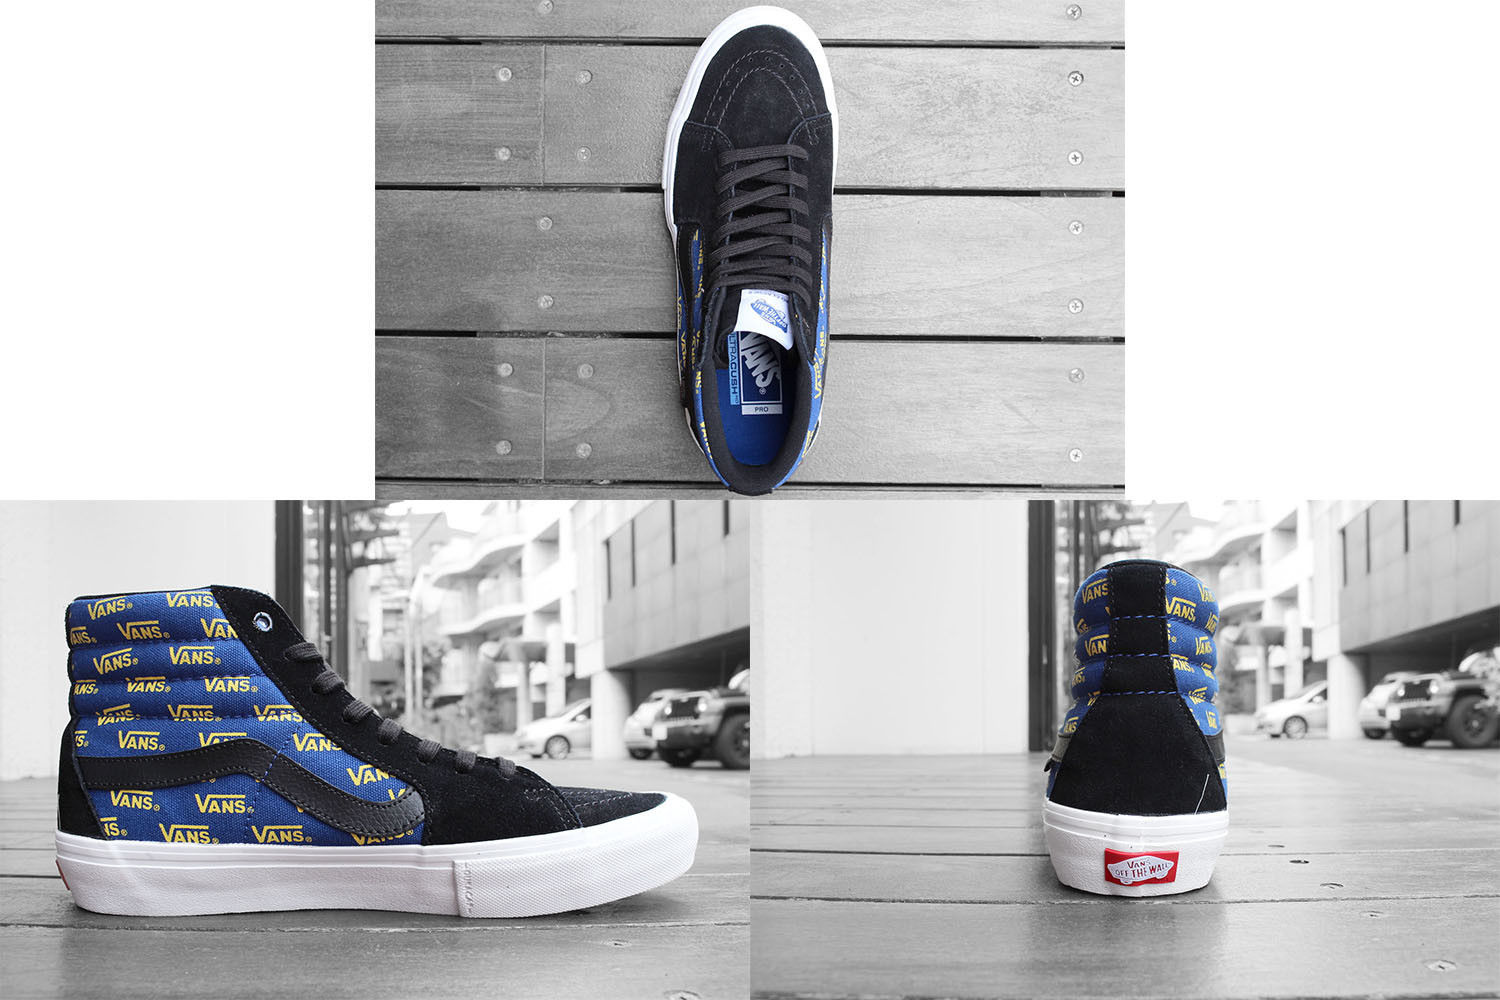 23e55f5e1c 57. 57. Previous. Vans Sk8 hi Pro BLACK CYBER YELLOW menS size 11 BLUE NEW  NWT SKATE SHOES · Vans Sk8 ...